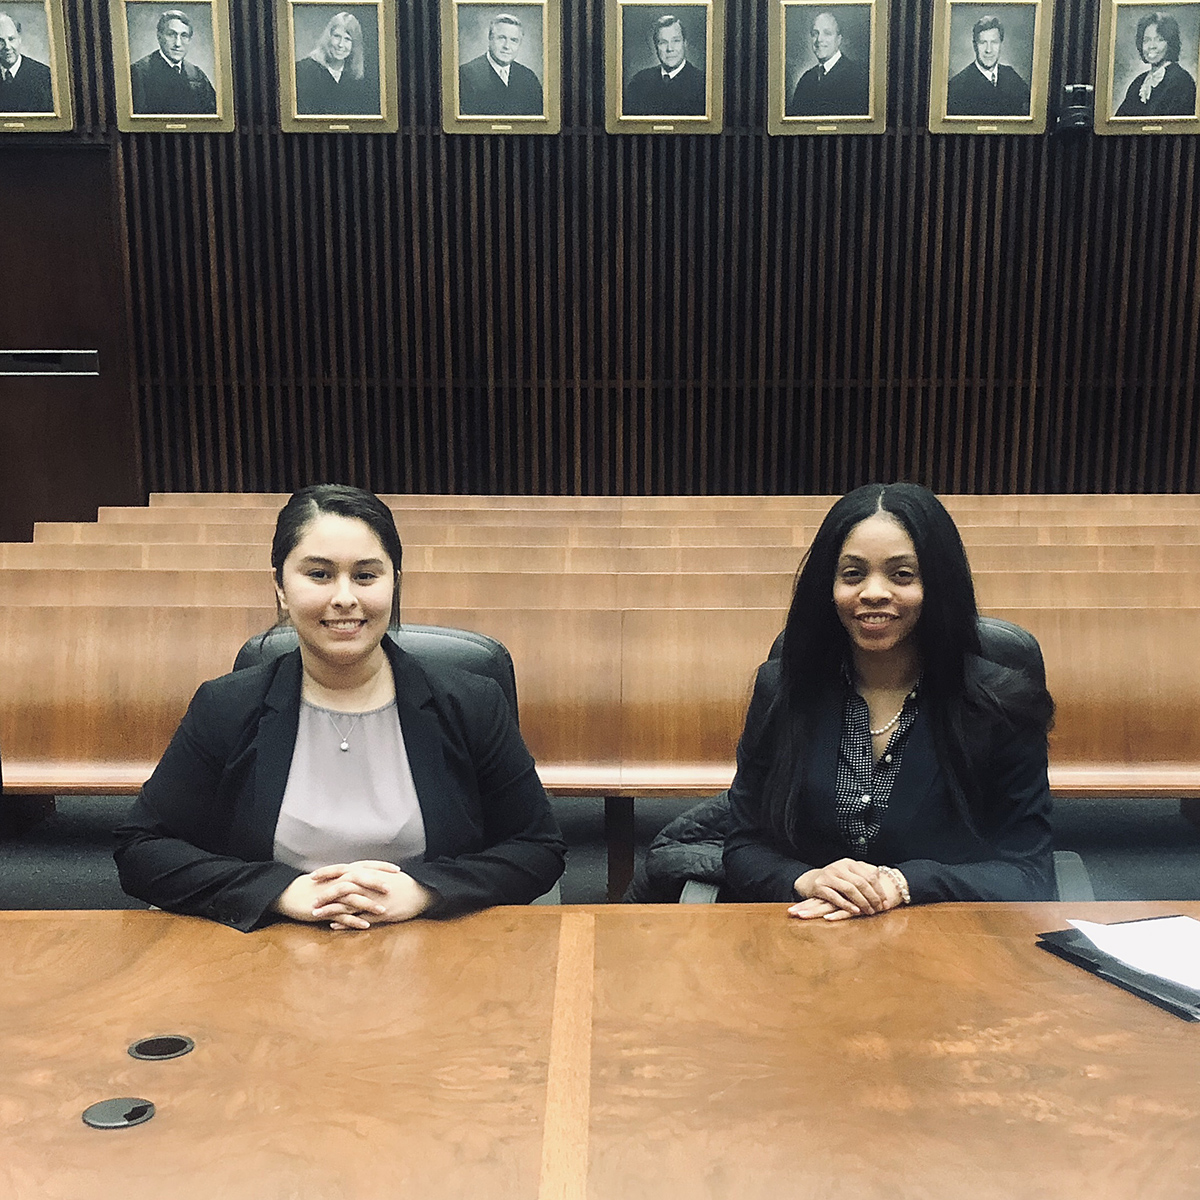 NBLSA-2019-Thurgood-Marshall-Moot-Court-team-Mireles-Ewing-1200px.jpg